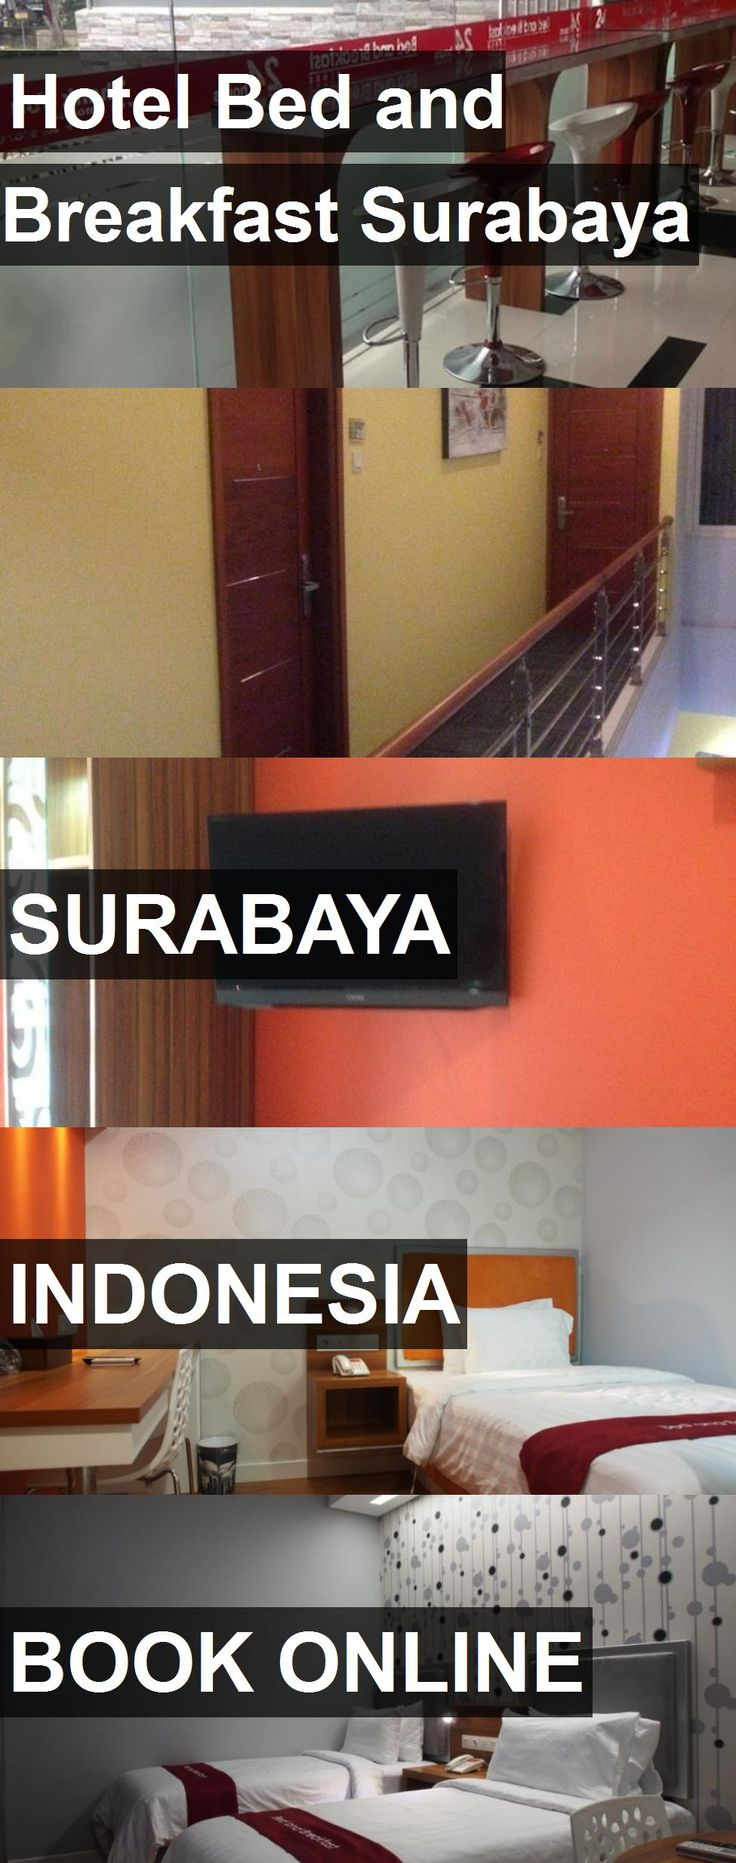 Hotel Bed and Breakfast Surabaya in Surabaya, Indonesia. For more information, photos, reviews and best prices please follow the link. #Indonesia #Surabaya #travel #vacation #hotel